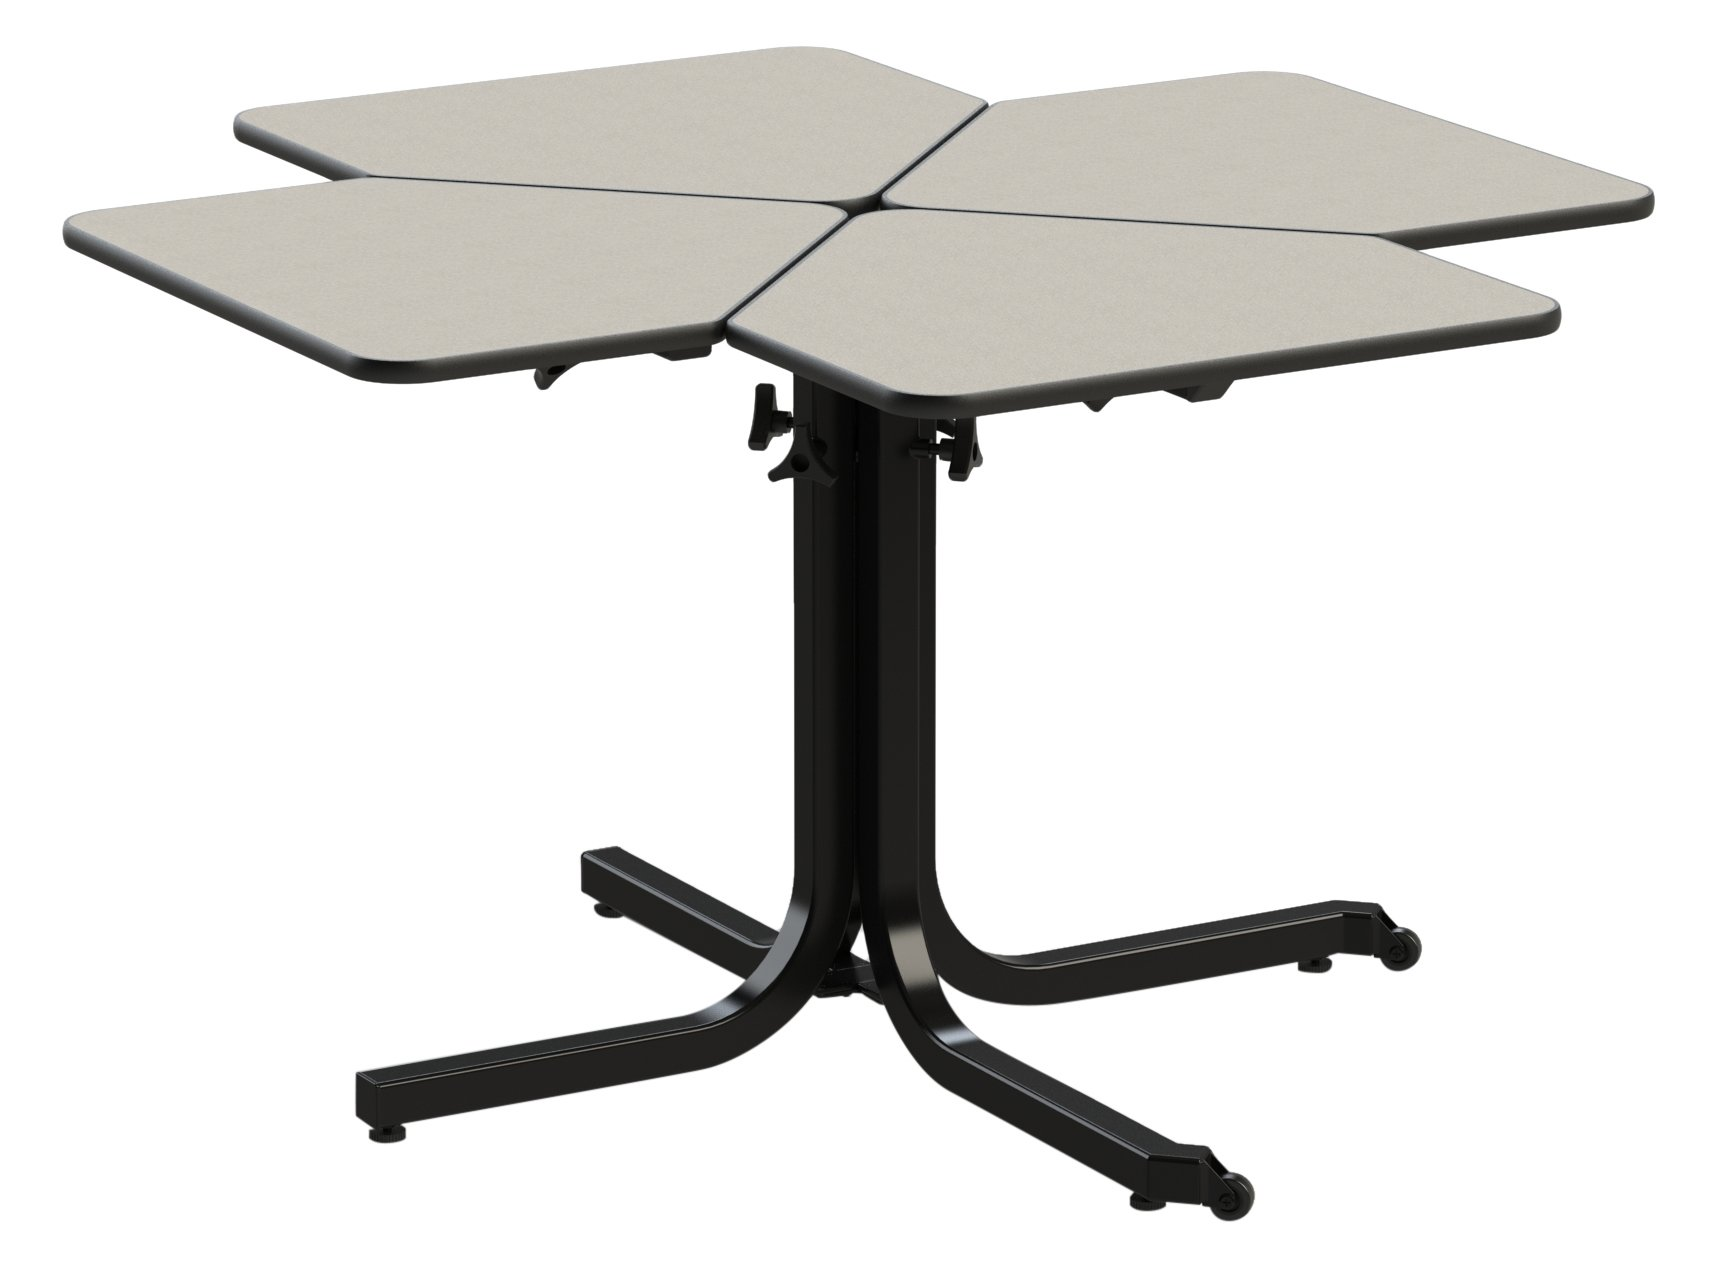 Wheel chair height adjustable table (4 person) single pedistal